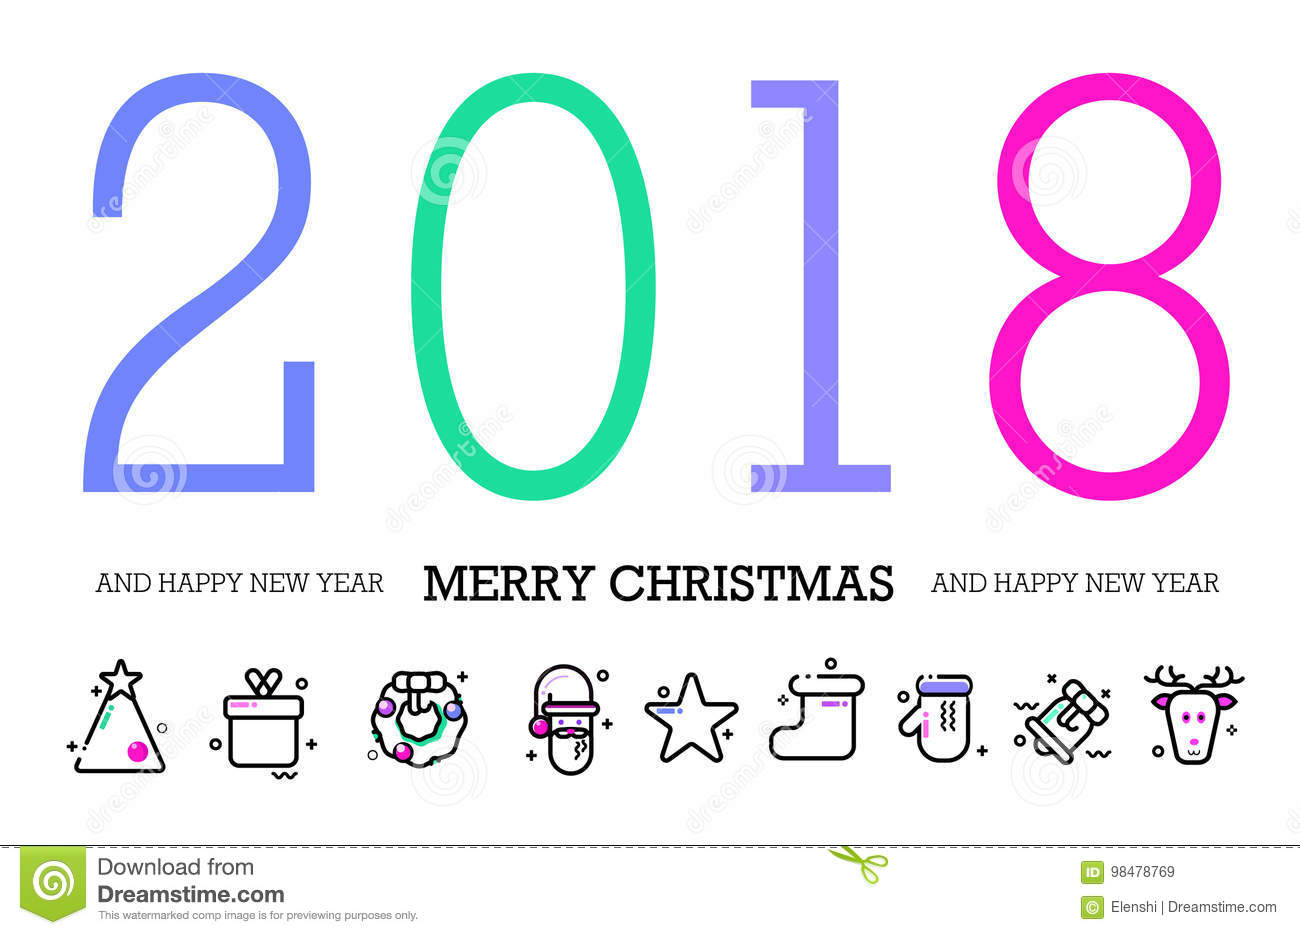 Seasons greetings happy new year 2018 colorful contemporary seasons greetings happy new year 2018 colorful contemporary abstraction design kristyandbryce Image collections